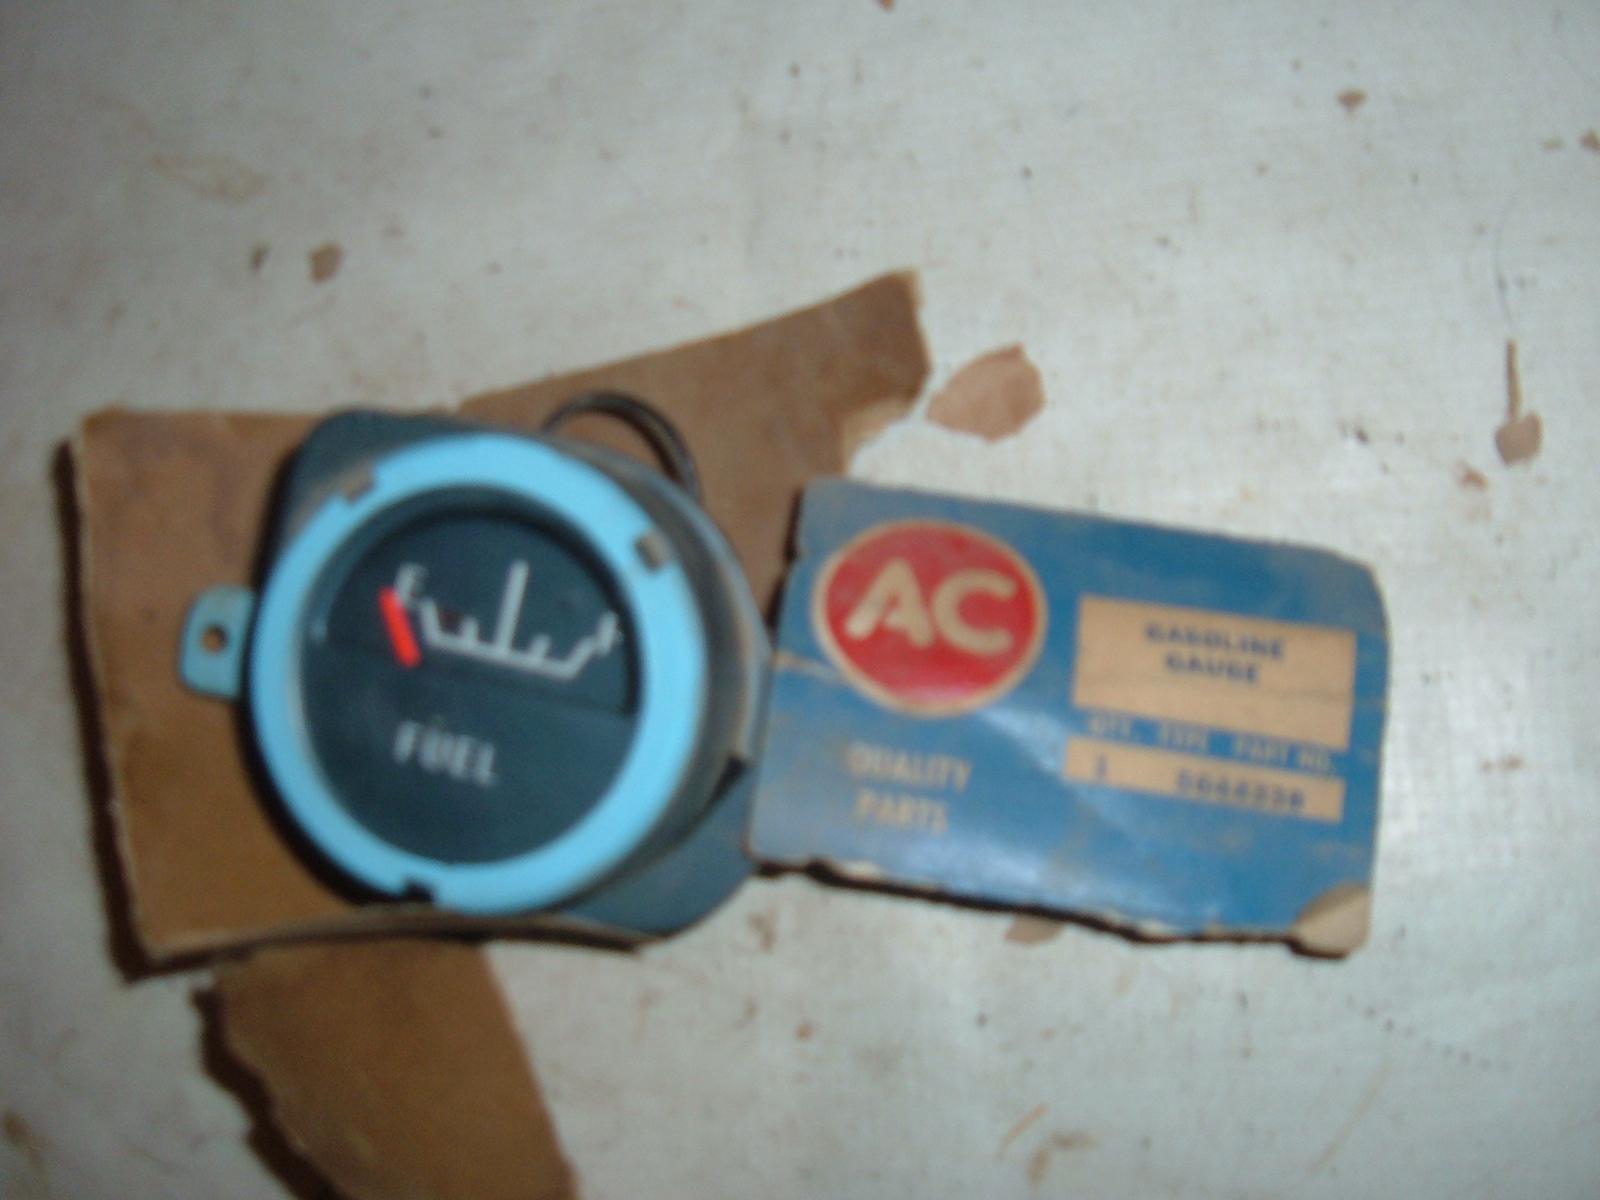 1963 pontiac grand prix gas gauge nos gm 5644338 (z 5644338)